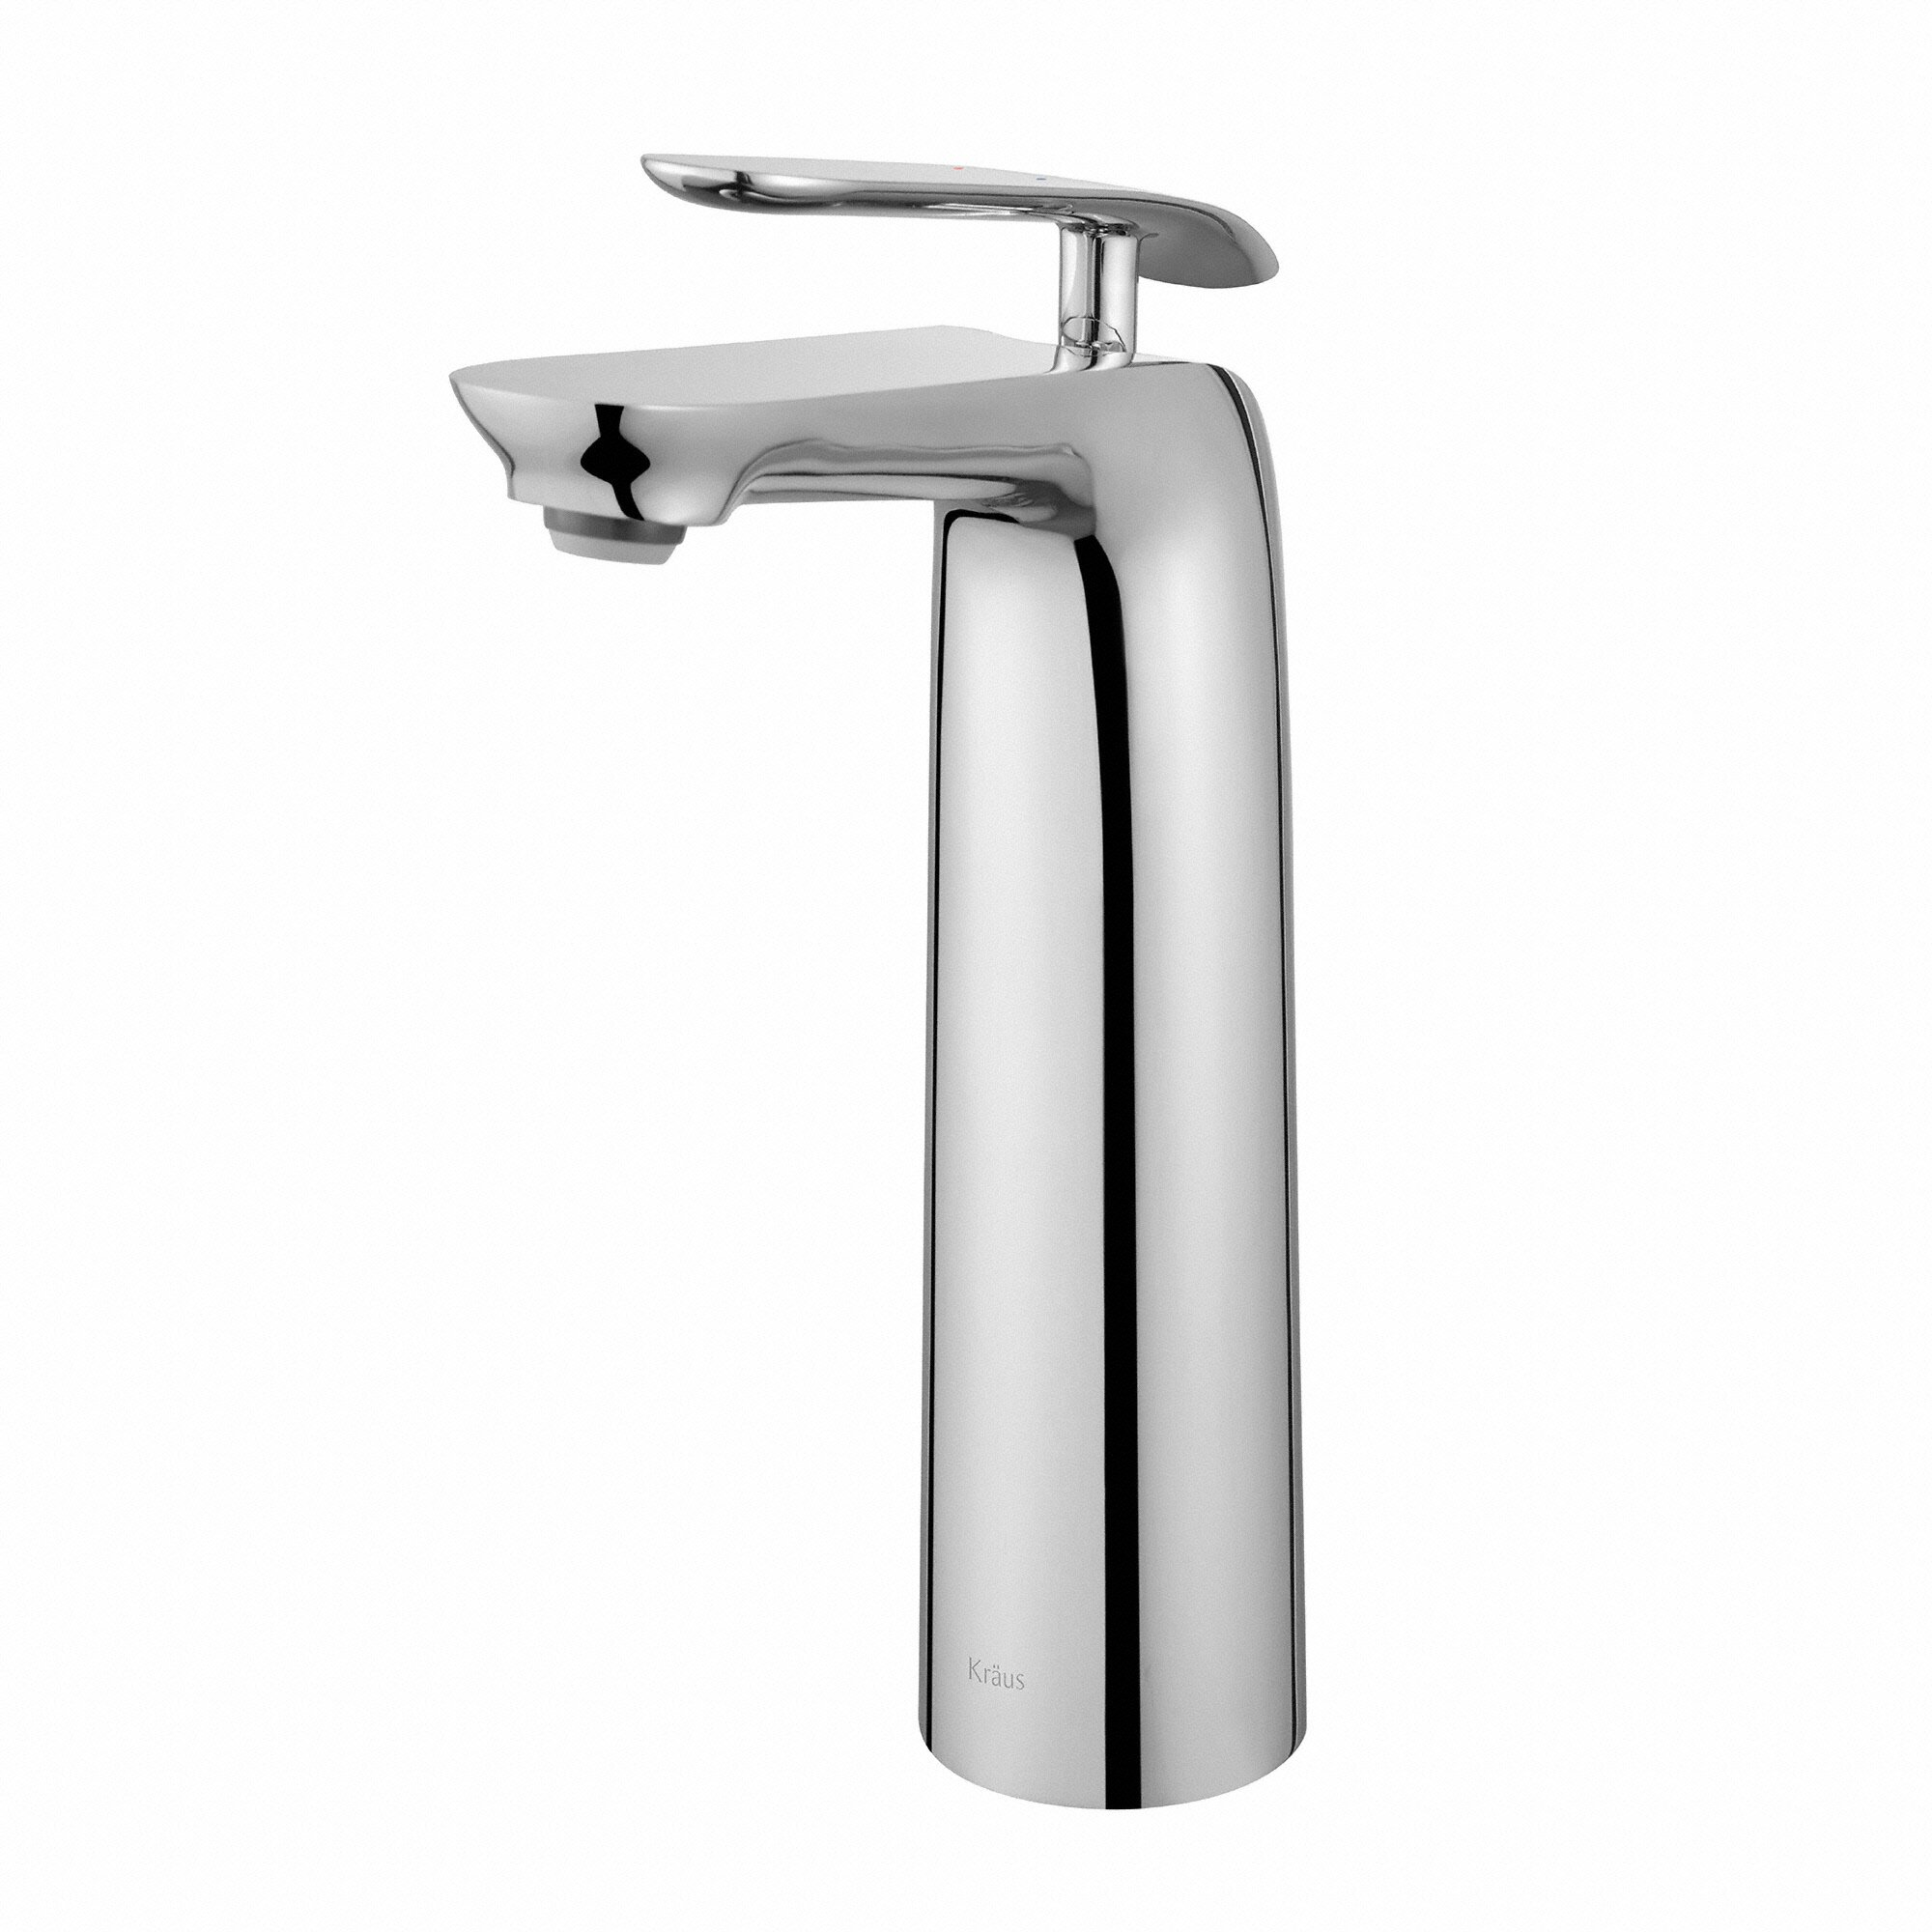 Kraus seda single hole single handle bathroom faucet for Single hole bathroom faucets